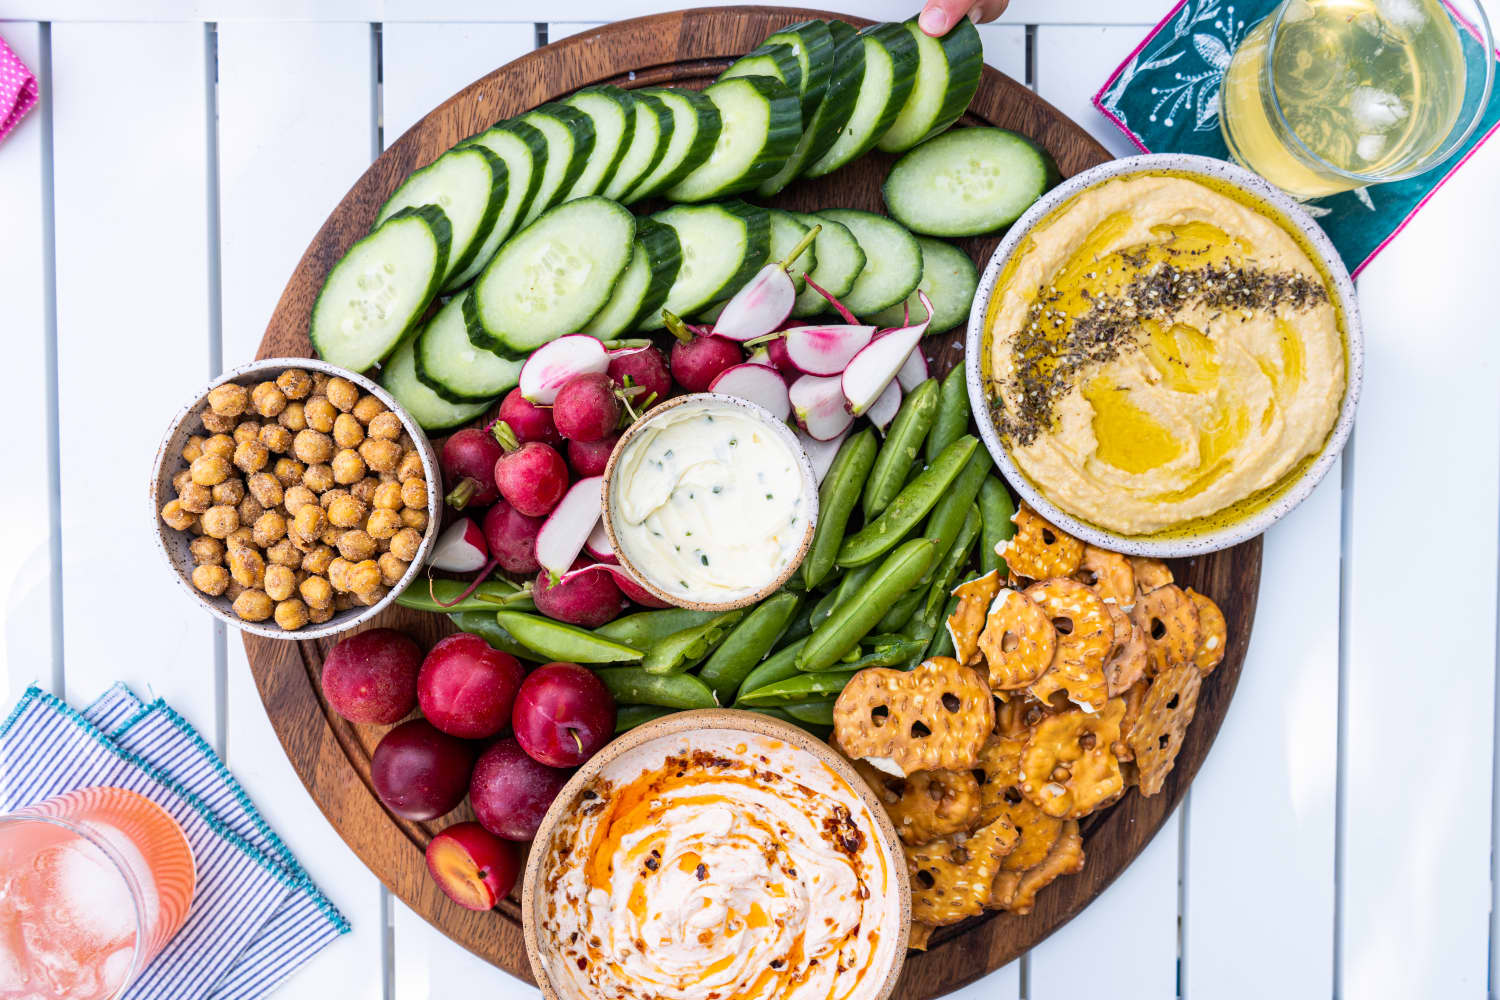 This No-Cook Veggie and Dip Board Is the Lazy Summer Dinner We All Need Right Now